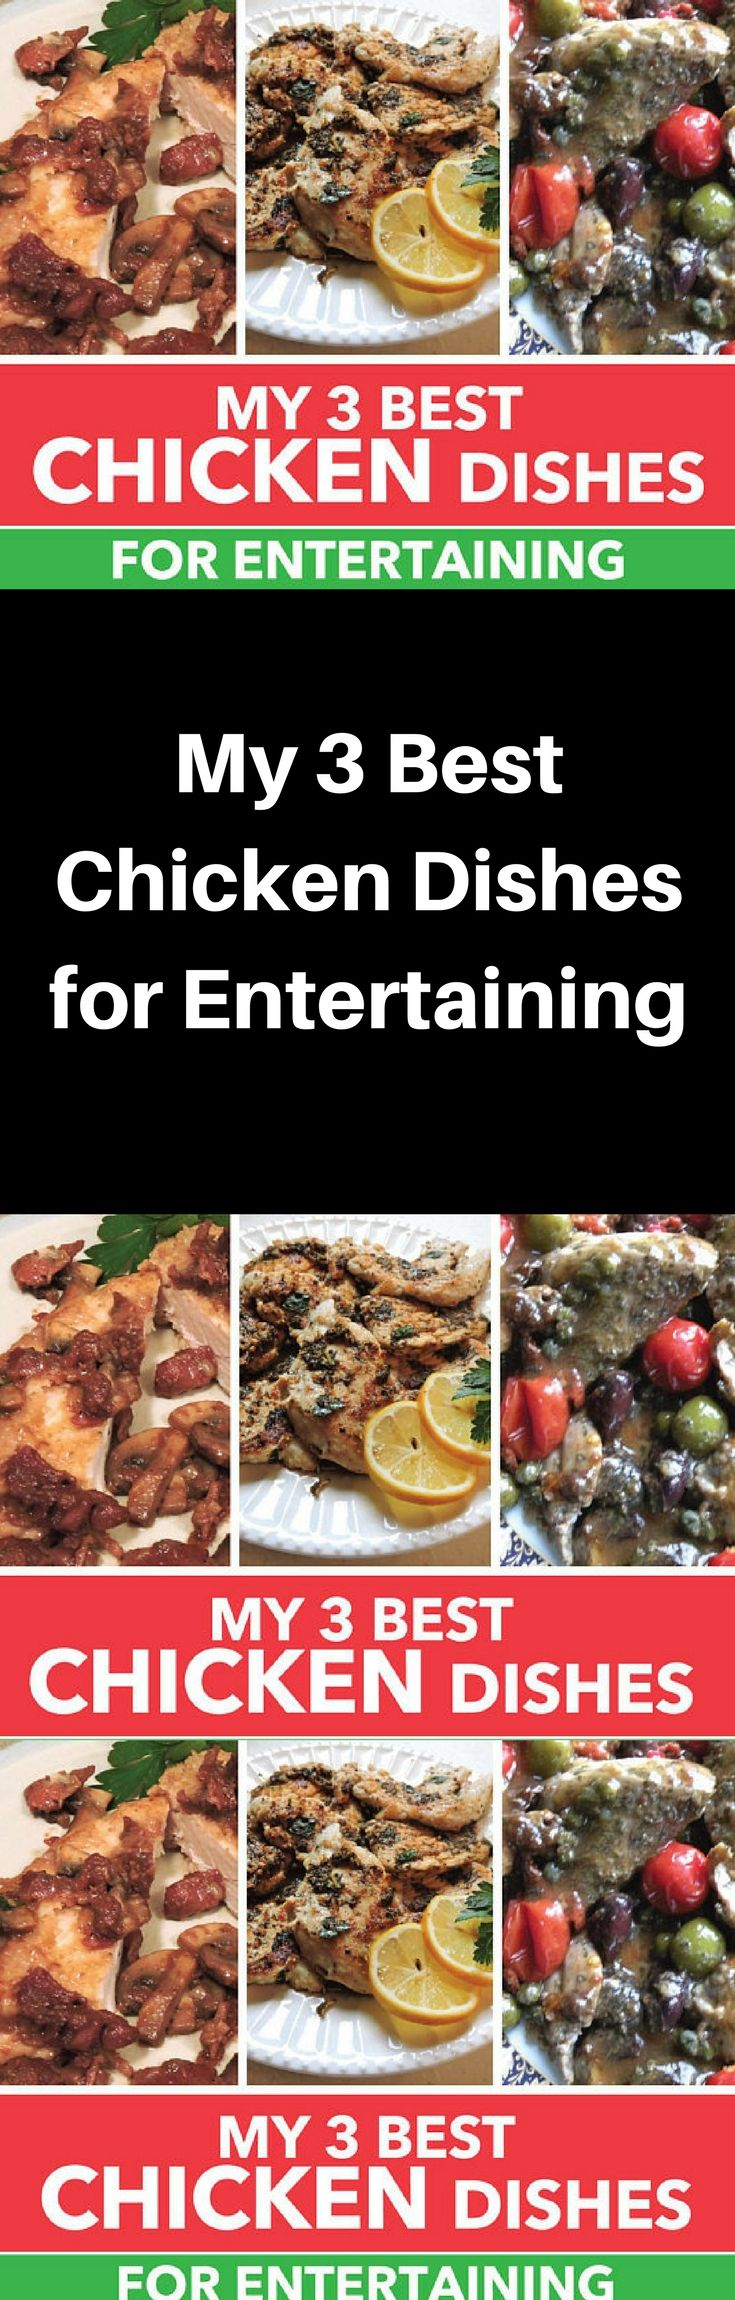 My 3 best chicken dishes for entertaining or that special meal my 3 best chicken dishes for entertaining or that special meal printable pdf or jpeg recipes scrumptious chicken recipes to make any meal a success forumfinder Choice Image